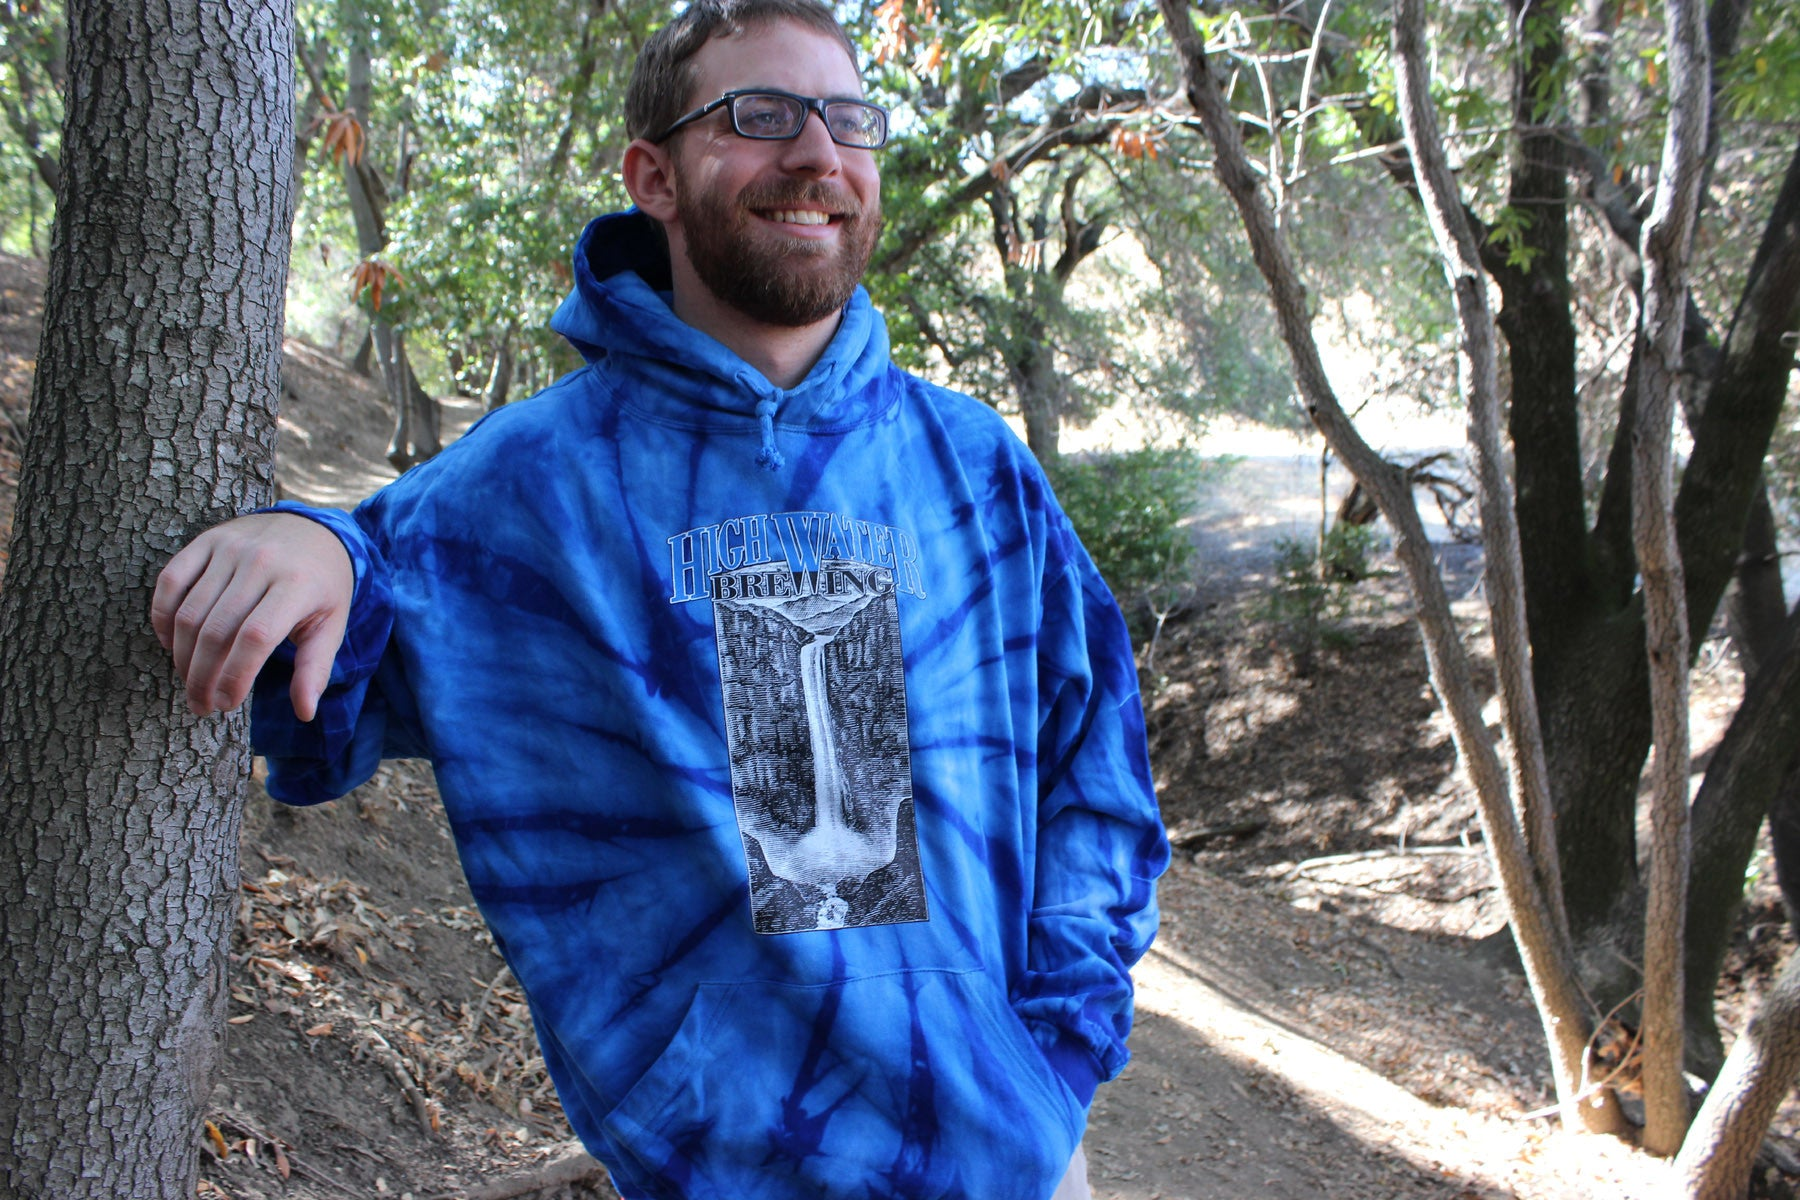 A4 High Water Tie Dye Royal Blue Hoodie Pullover